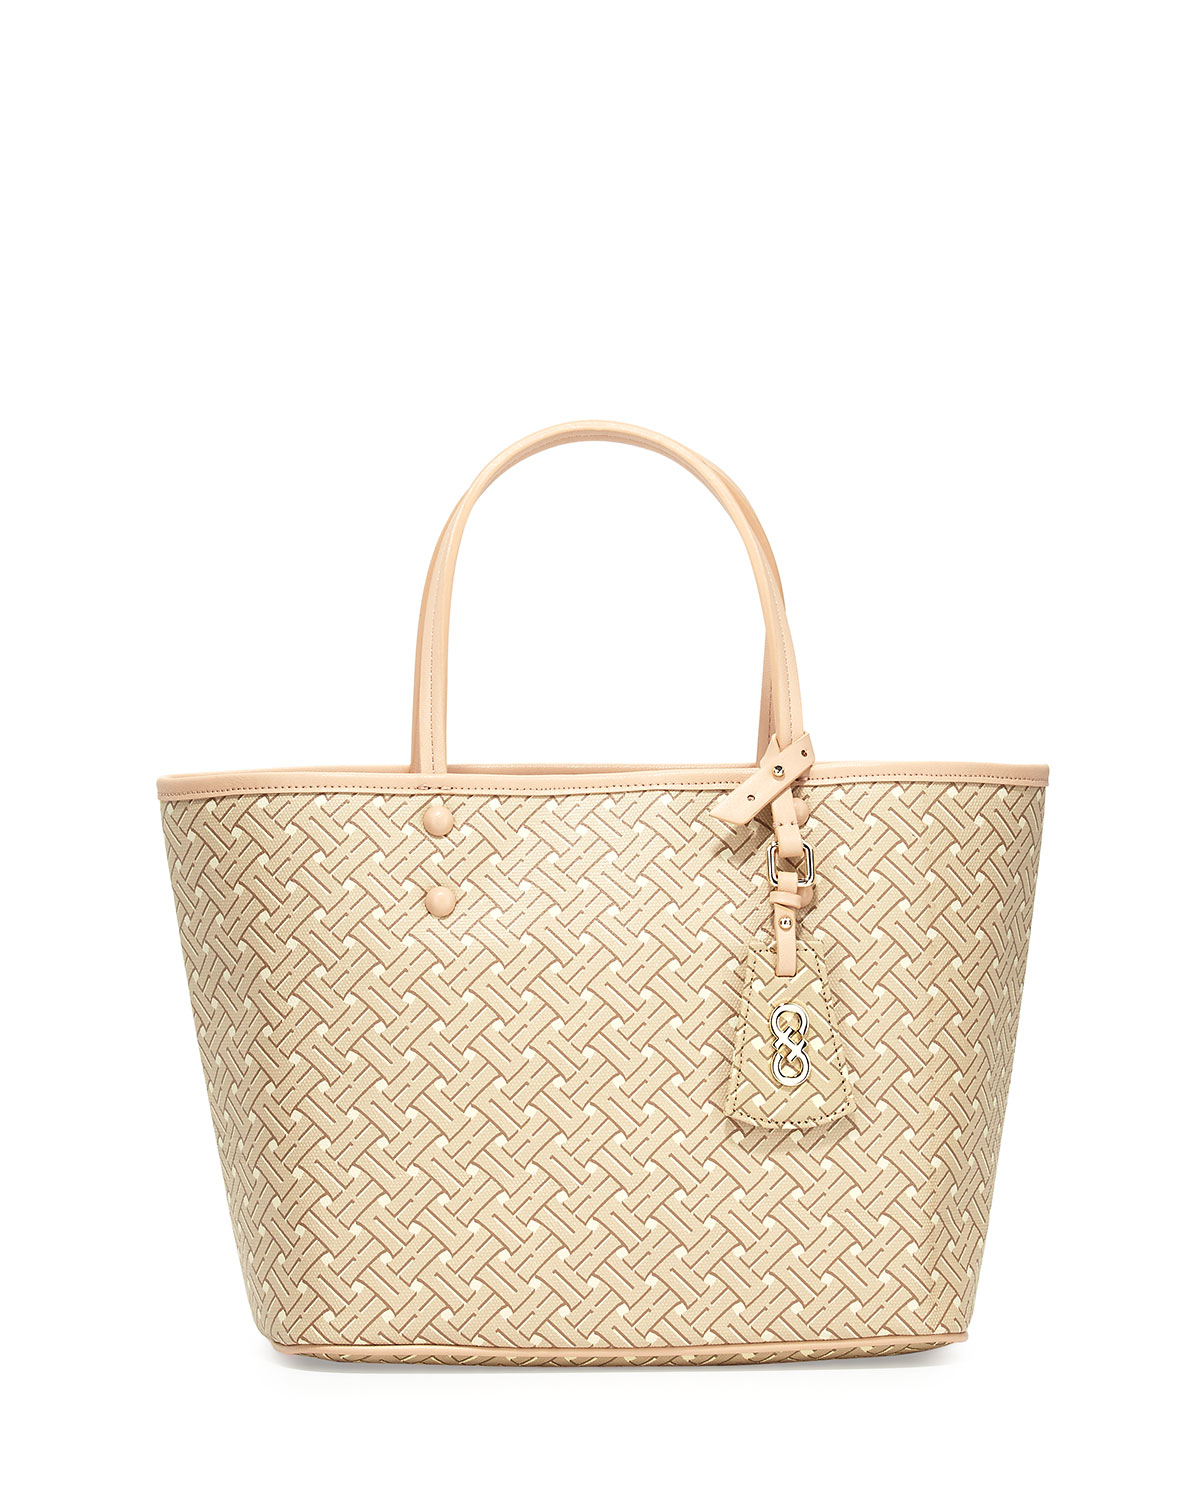 938efb6eb Cole Haan Signature-weave Small Tote Bag in Natural - Lyst